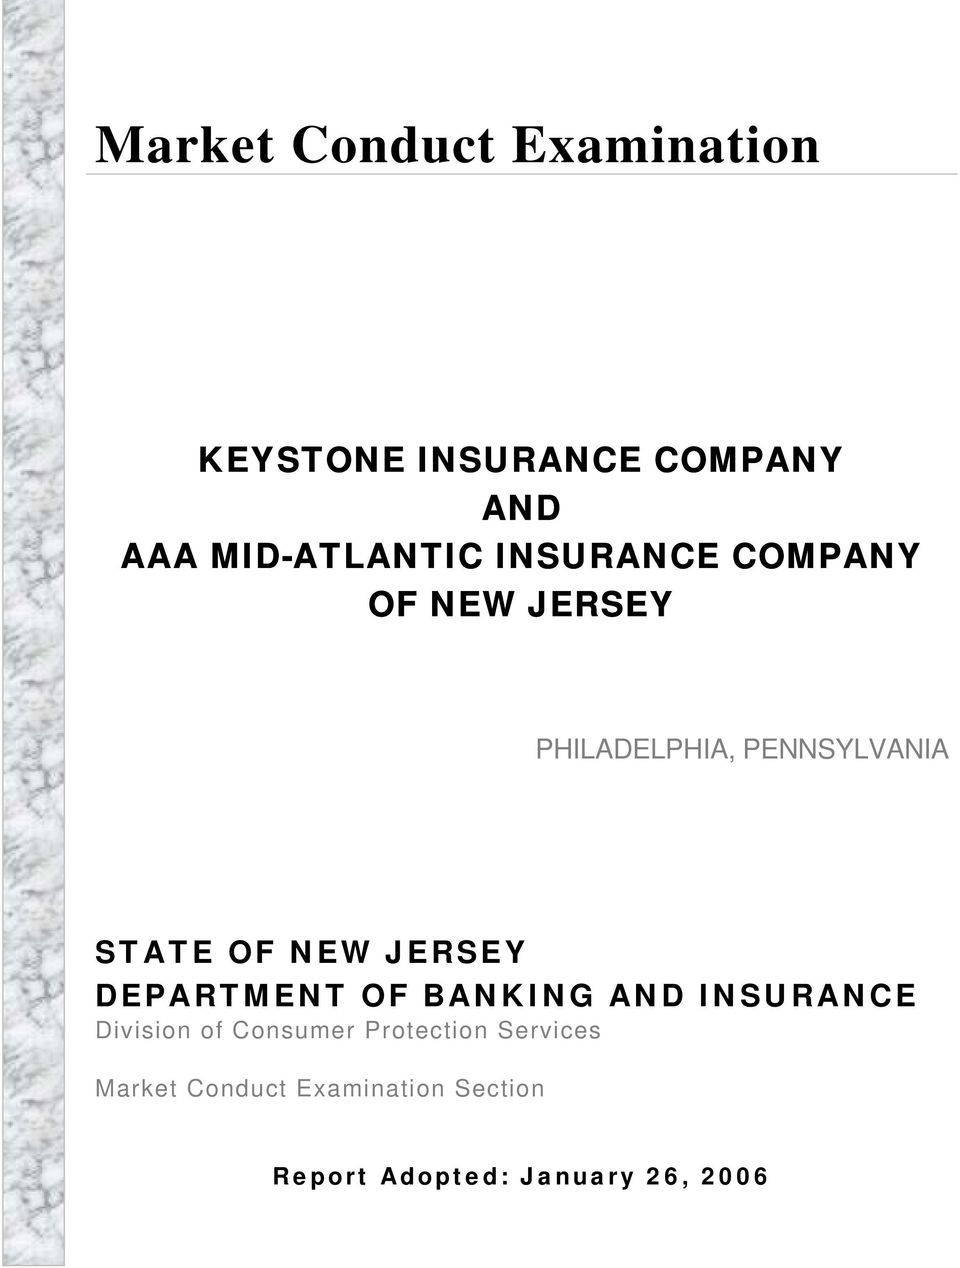 JERSEY DEPARTMENT OF BANKING AND INSURANCE Division of Consumer Protection